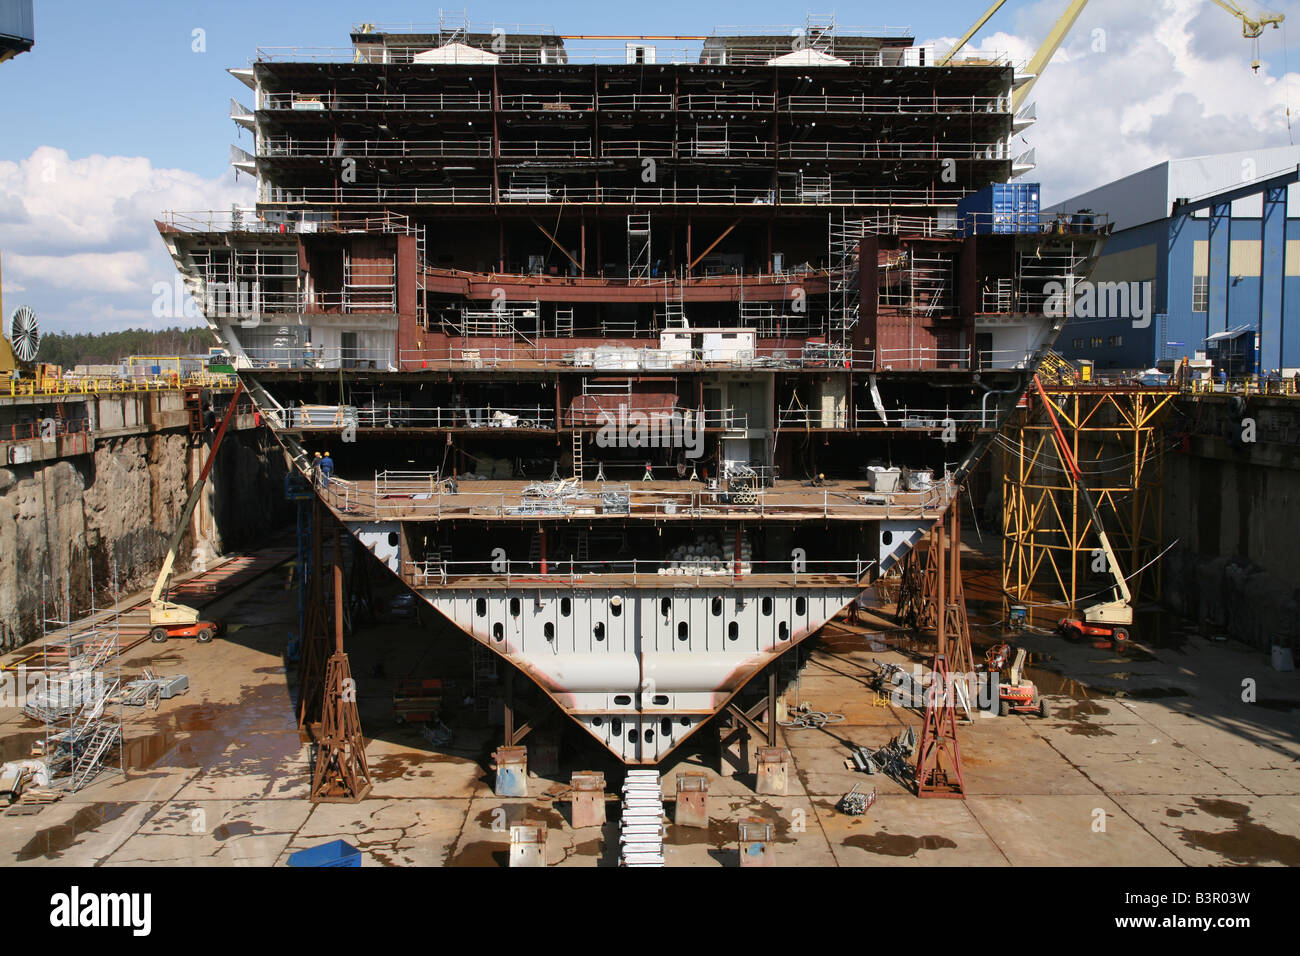 Oasis of the Seas under construction at Aker Yards Finland - Stock Image